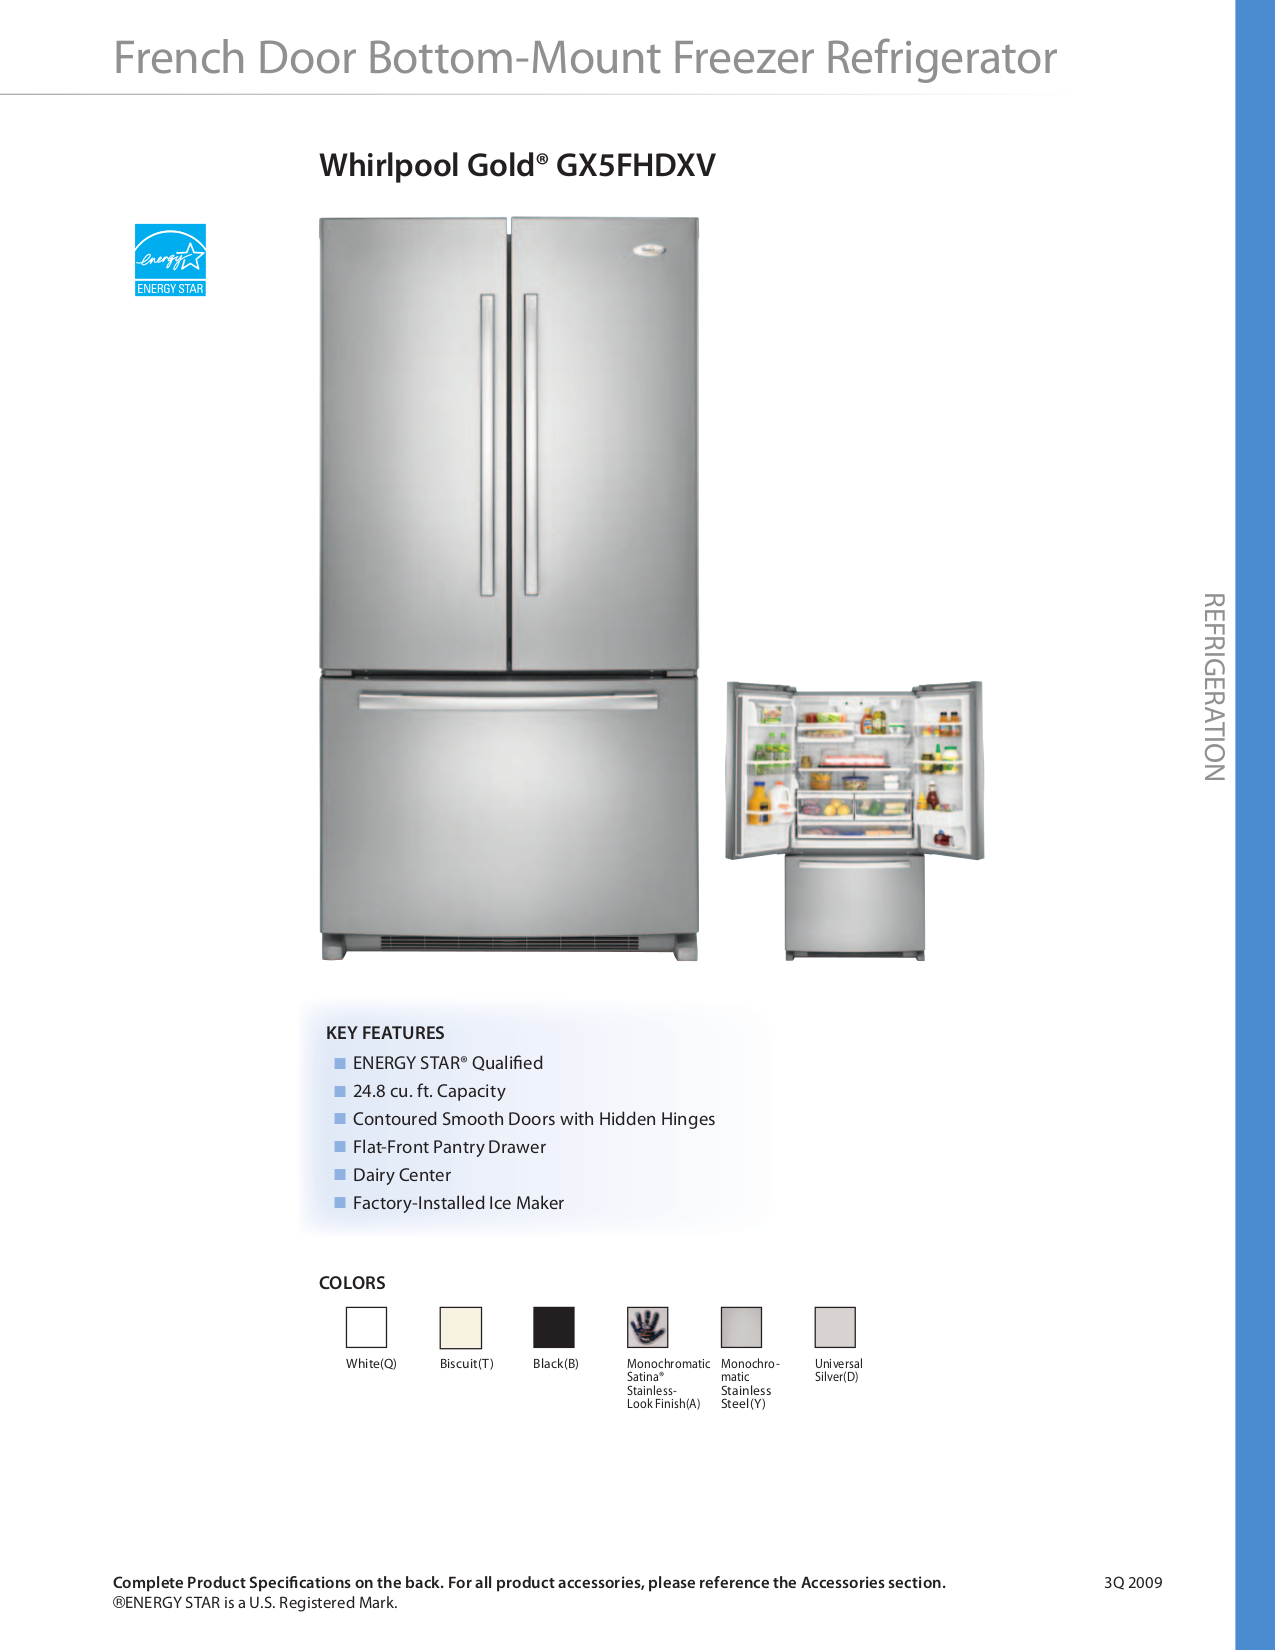 whirlpool french door refrigerator manual